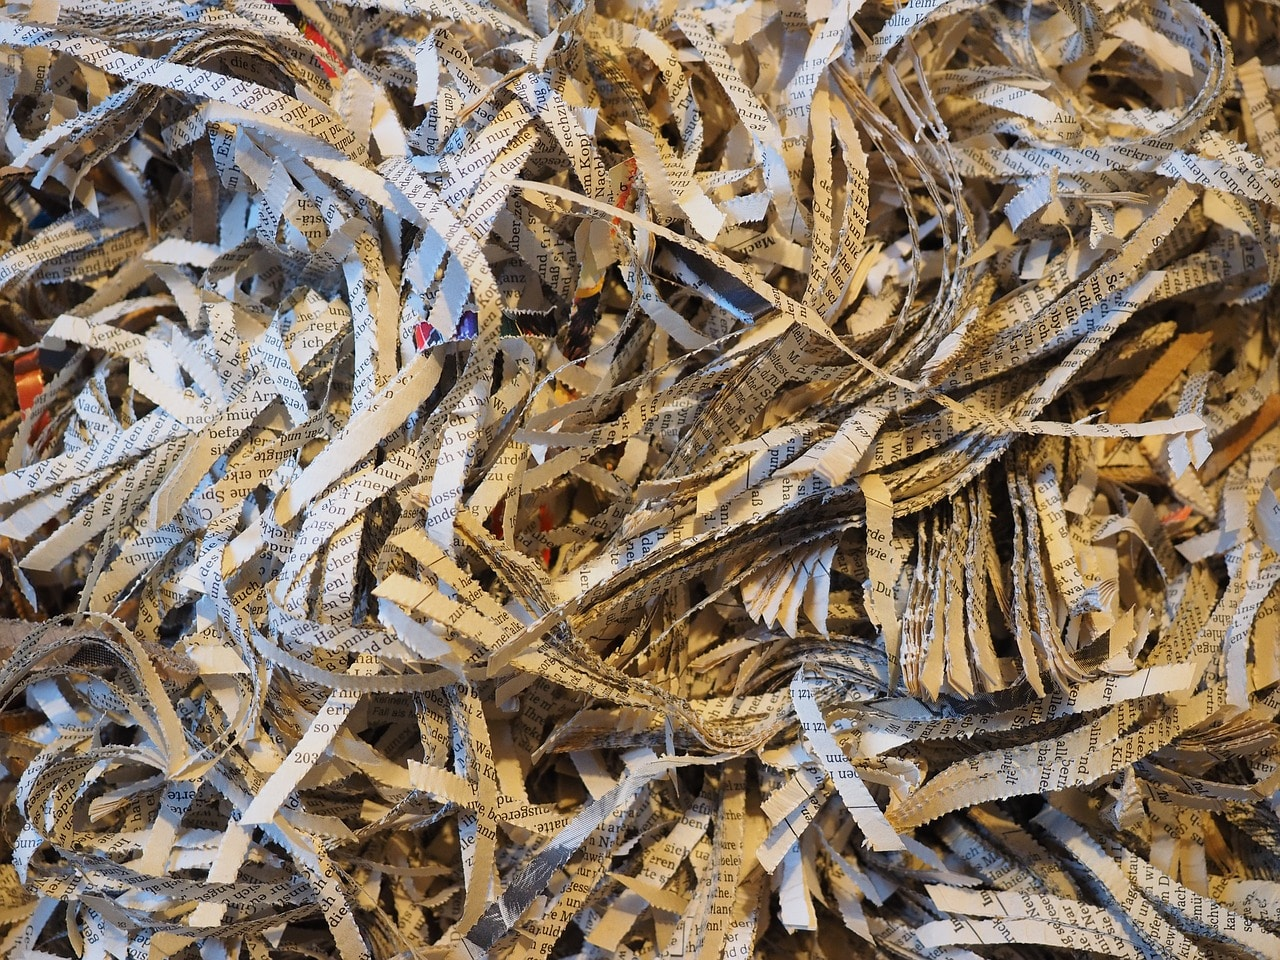 Comparing Document Shredding to Just Recycling